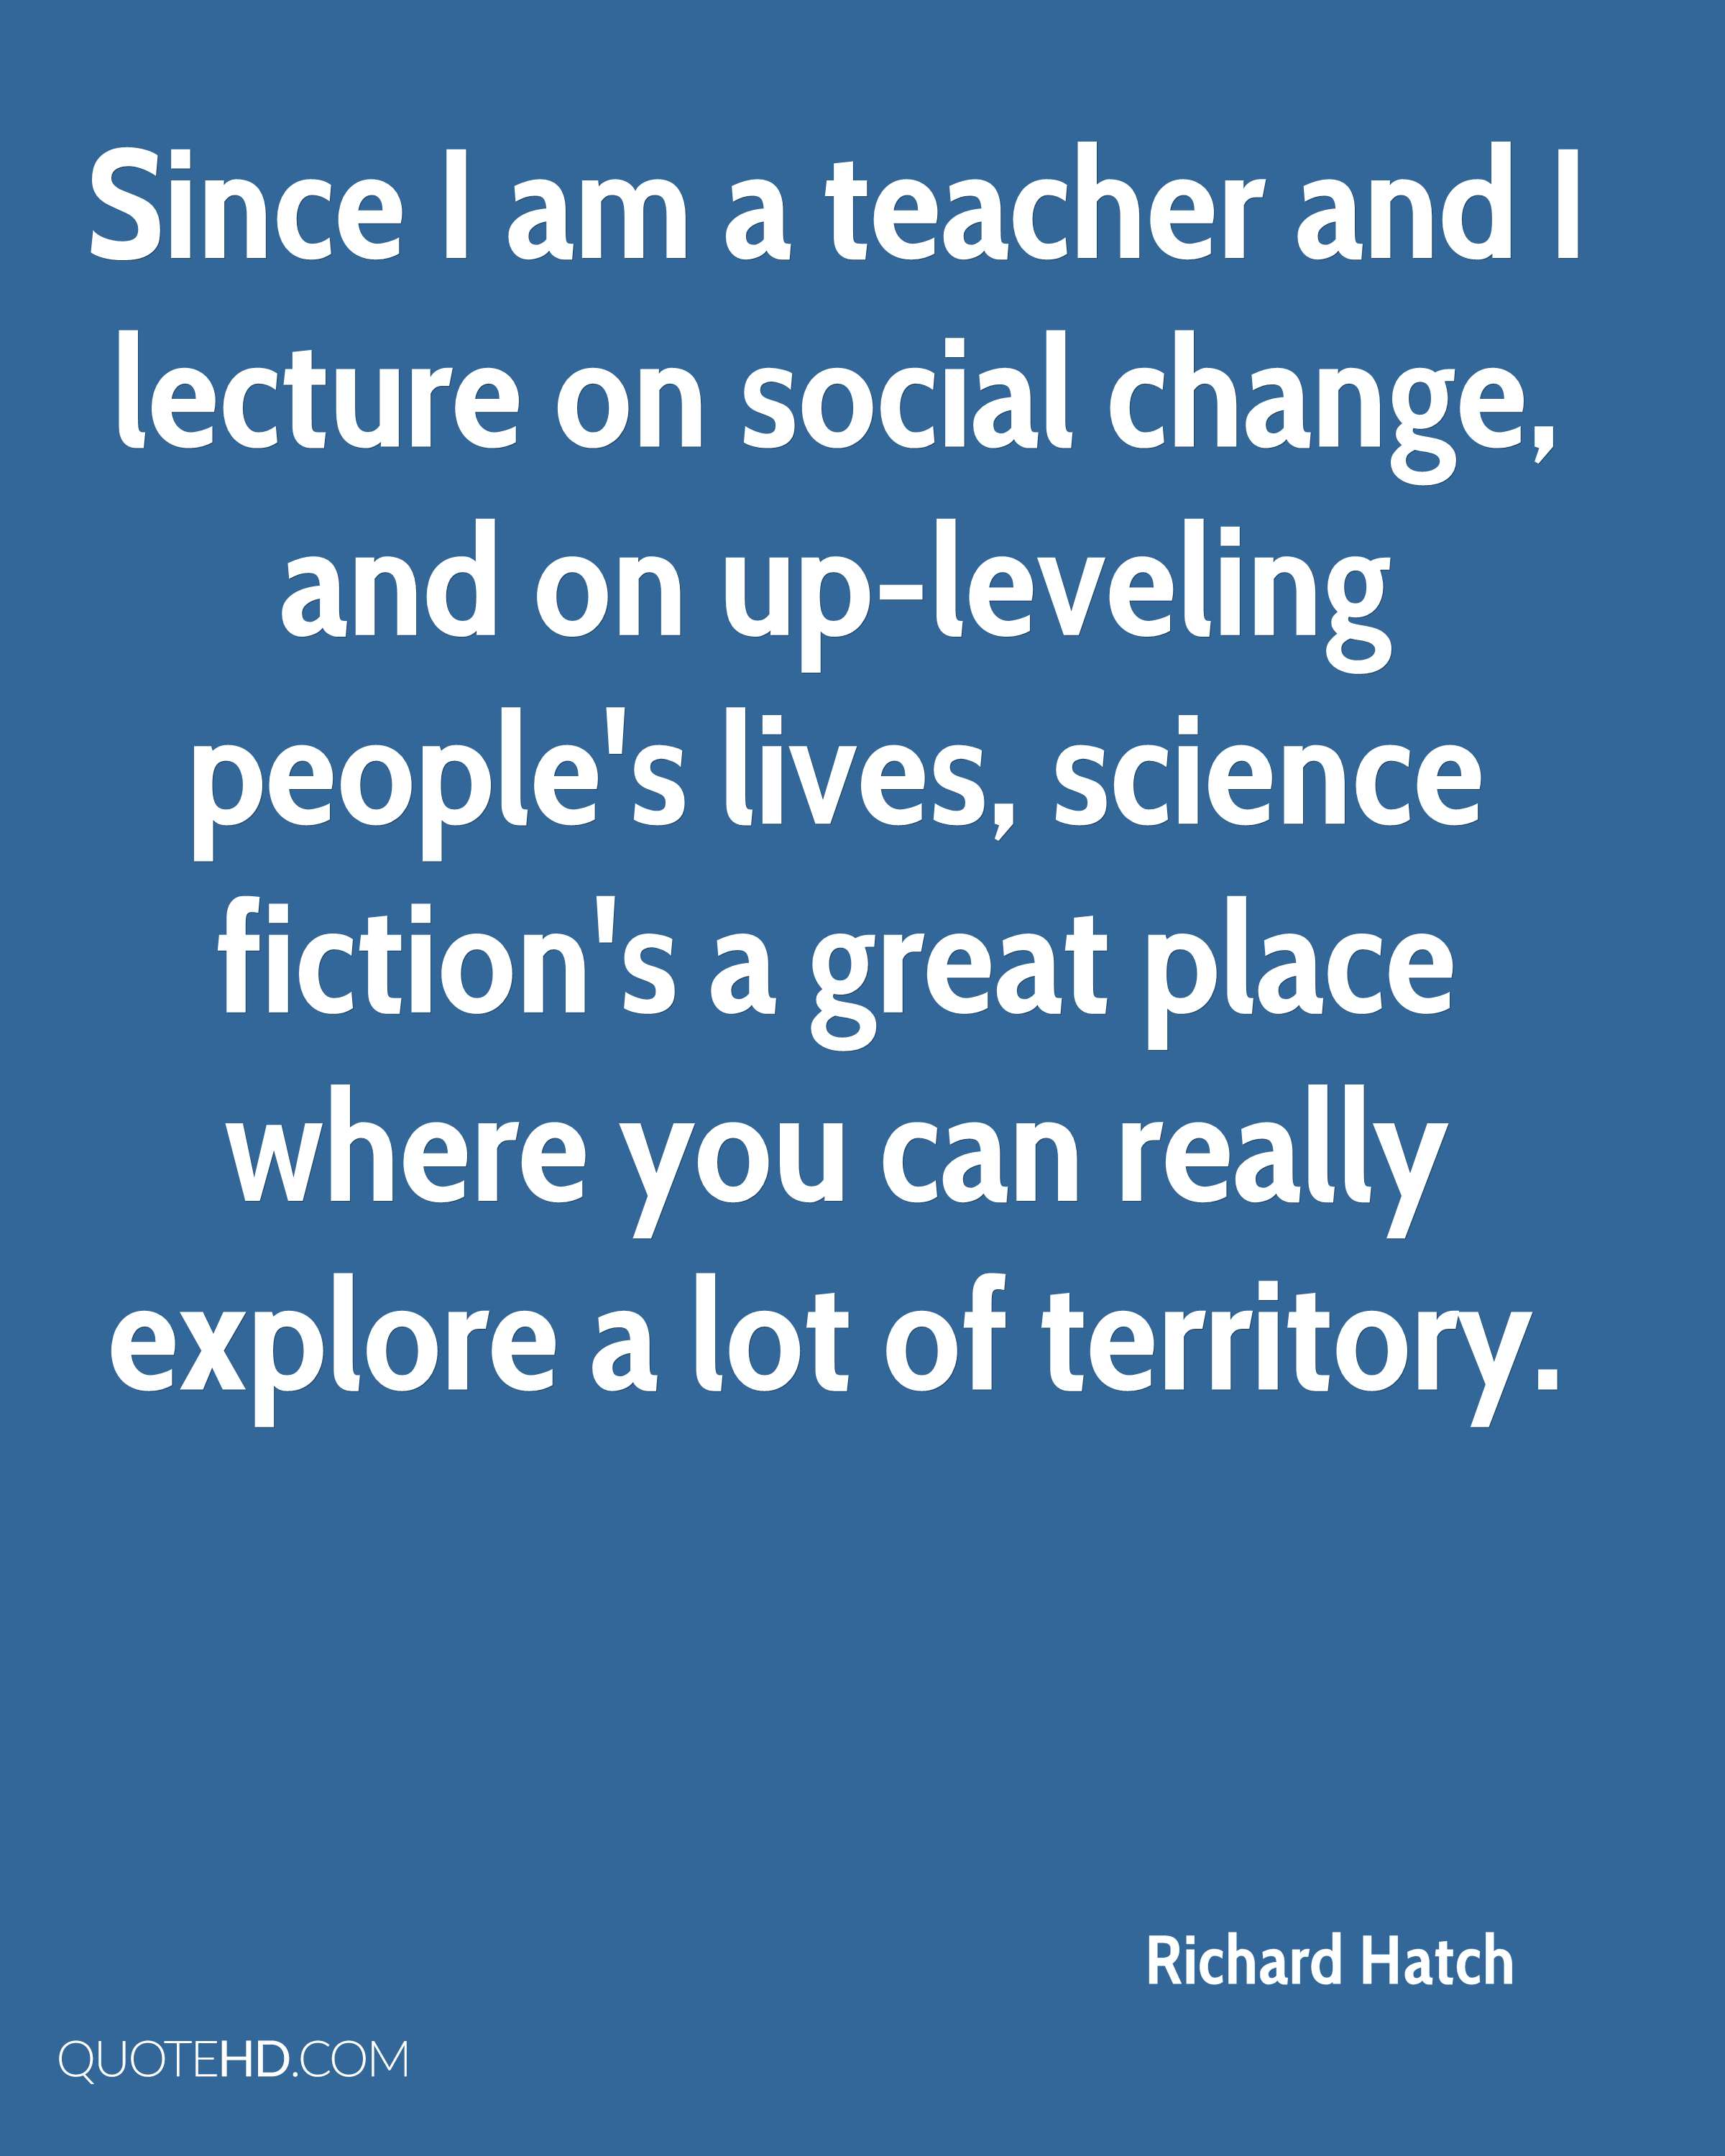 Social Change Quotes Richard Hatch Quotes  Quotehd